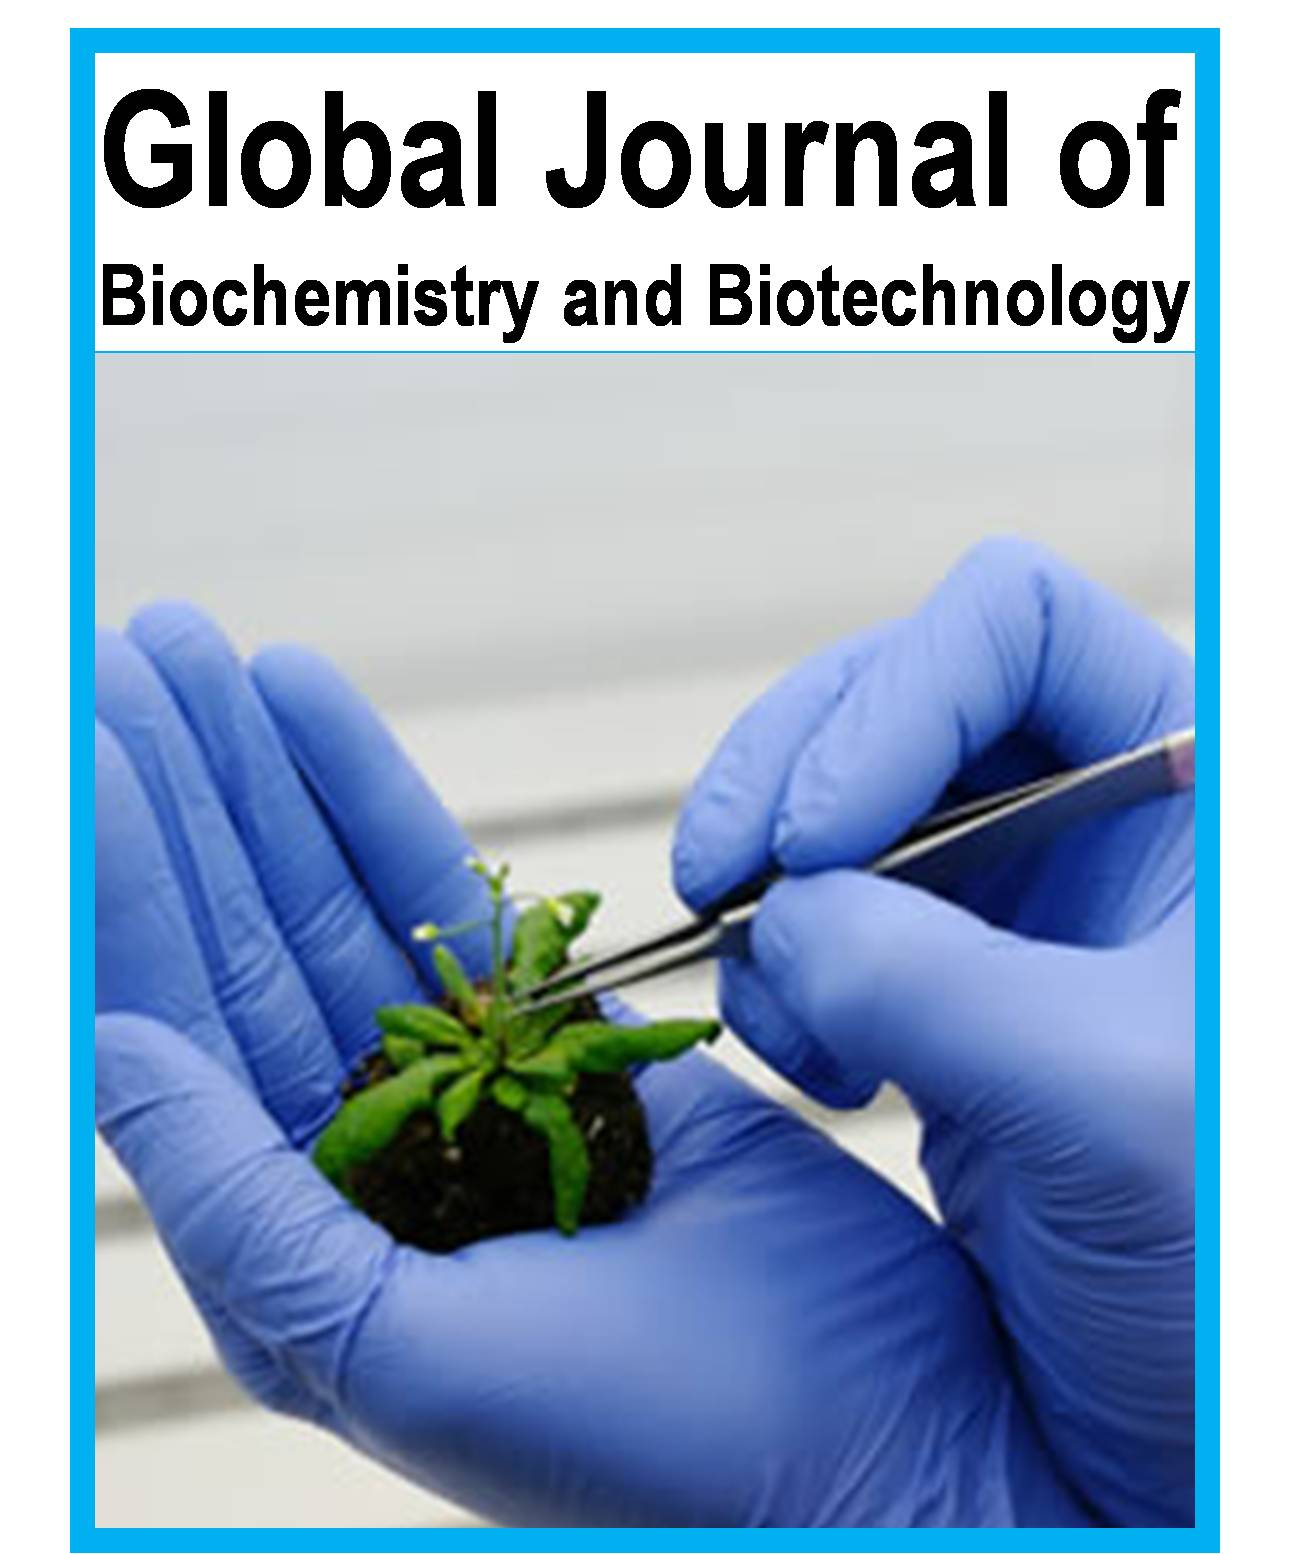 global journal of biochemistry and biotechnology org is a peer reviewed open access journal that provides rapid publication monthly of articles in all areas of biochemistry and biotechnology and related